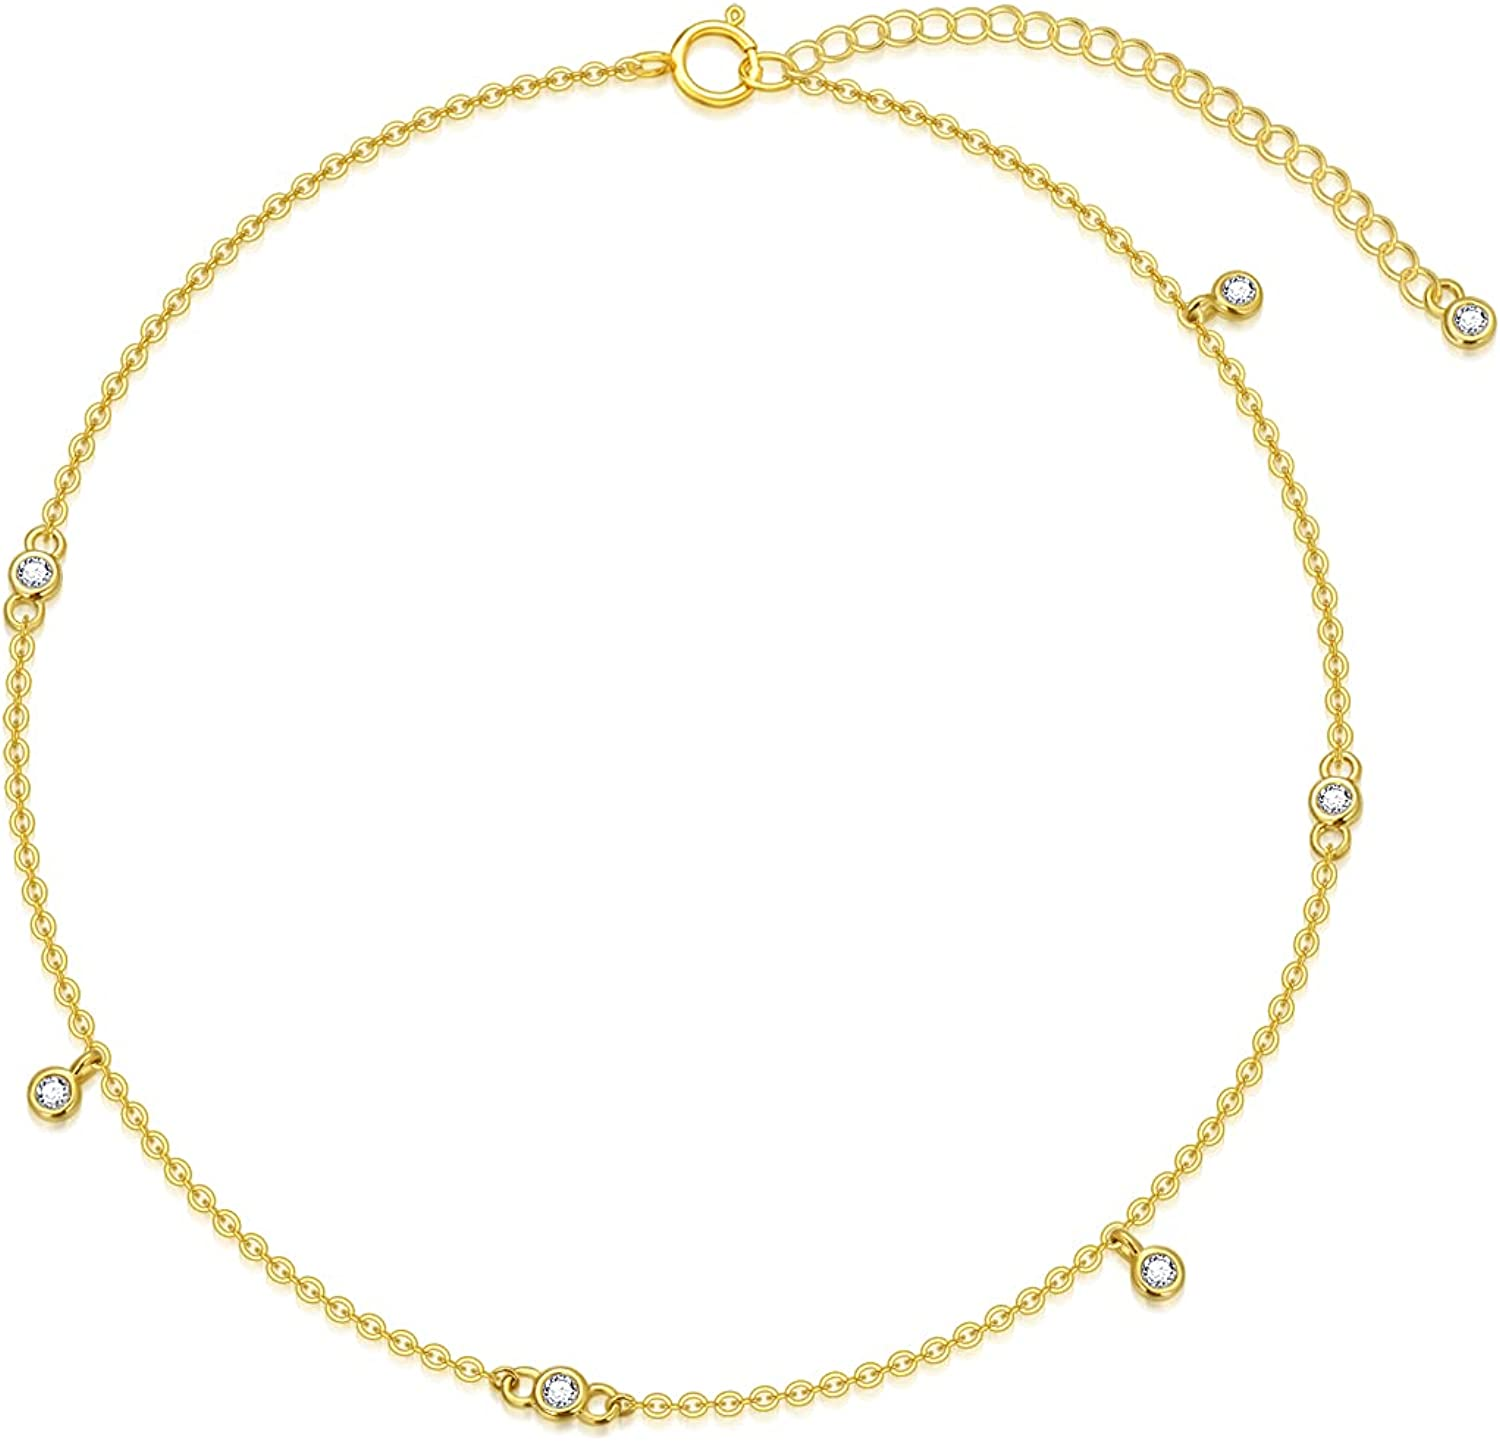 10K 14K Solid Gold Chain Anklet for Women, Real Gold Tiny 2 mm Cubic Zirconia Ankle Bracelets Jewelry Gift for Her, 8+2 Inch